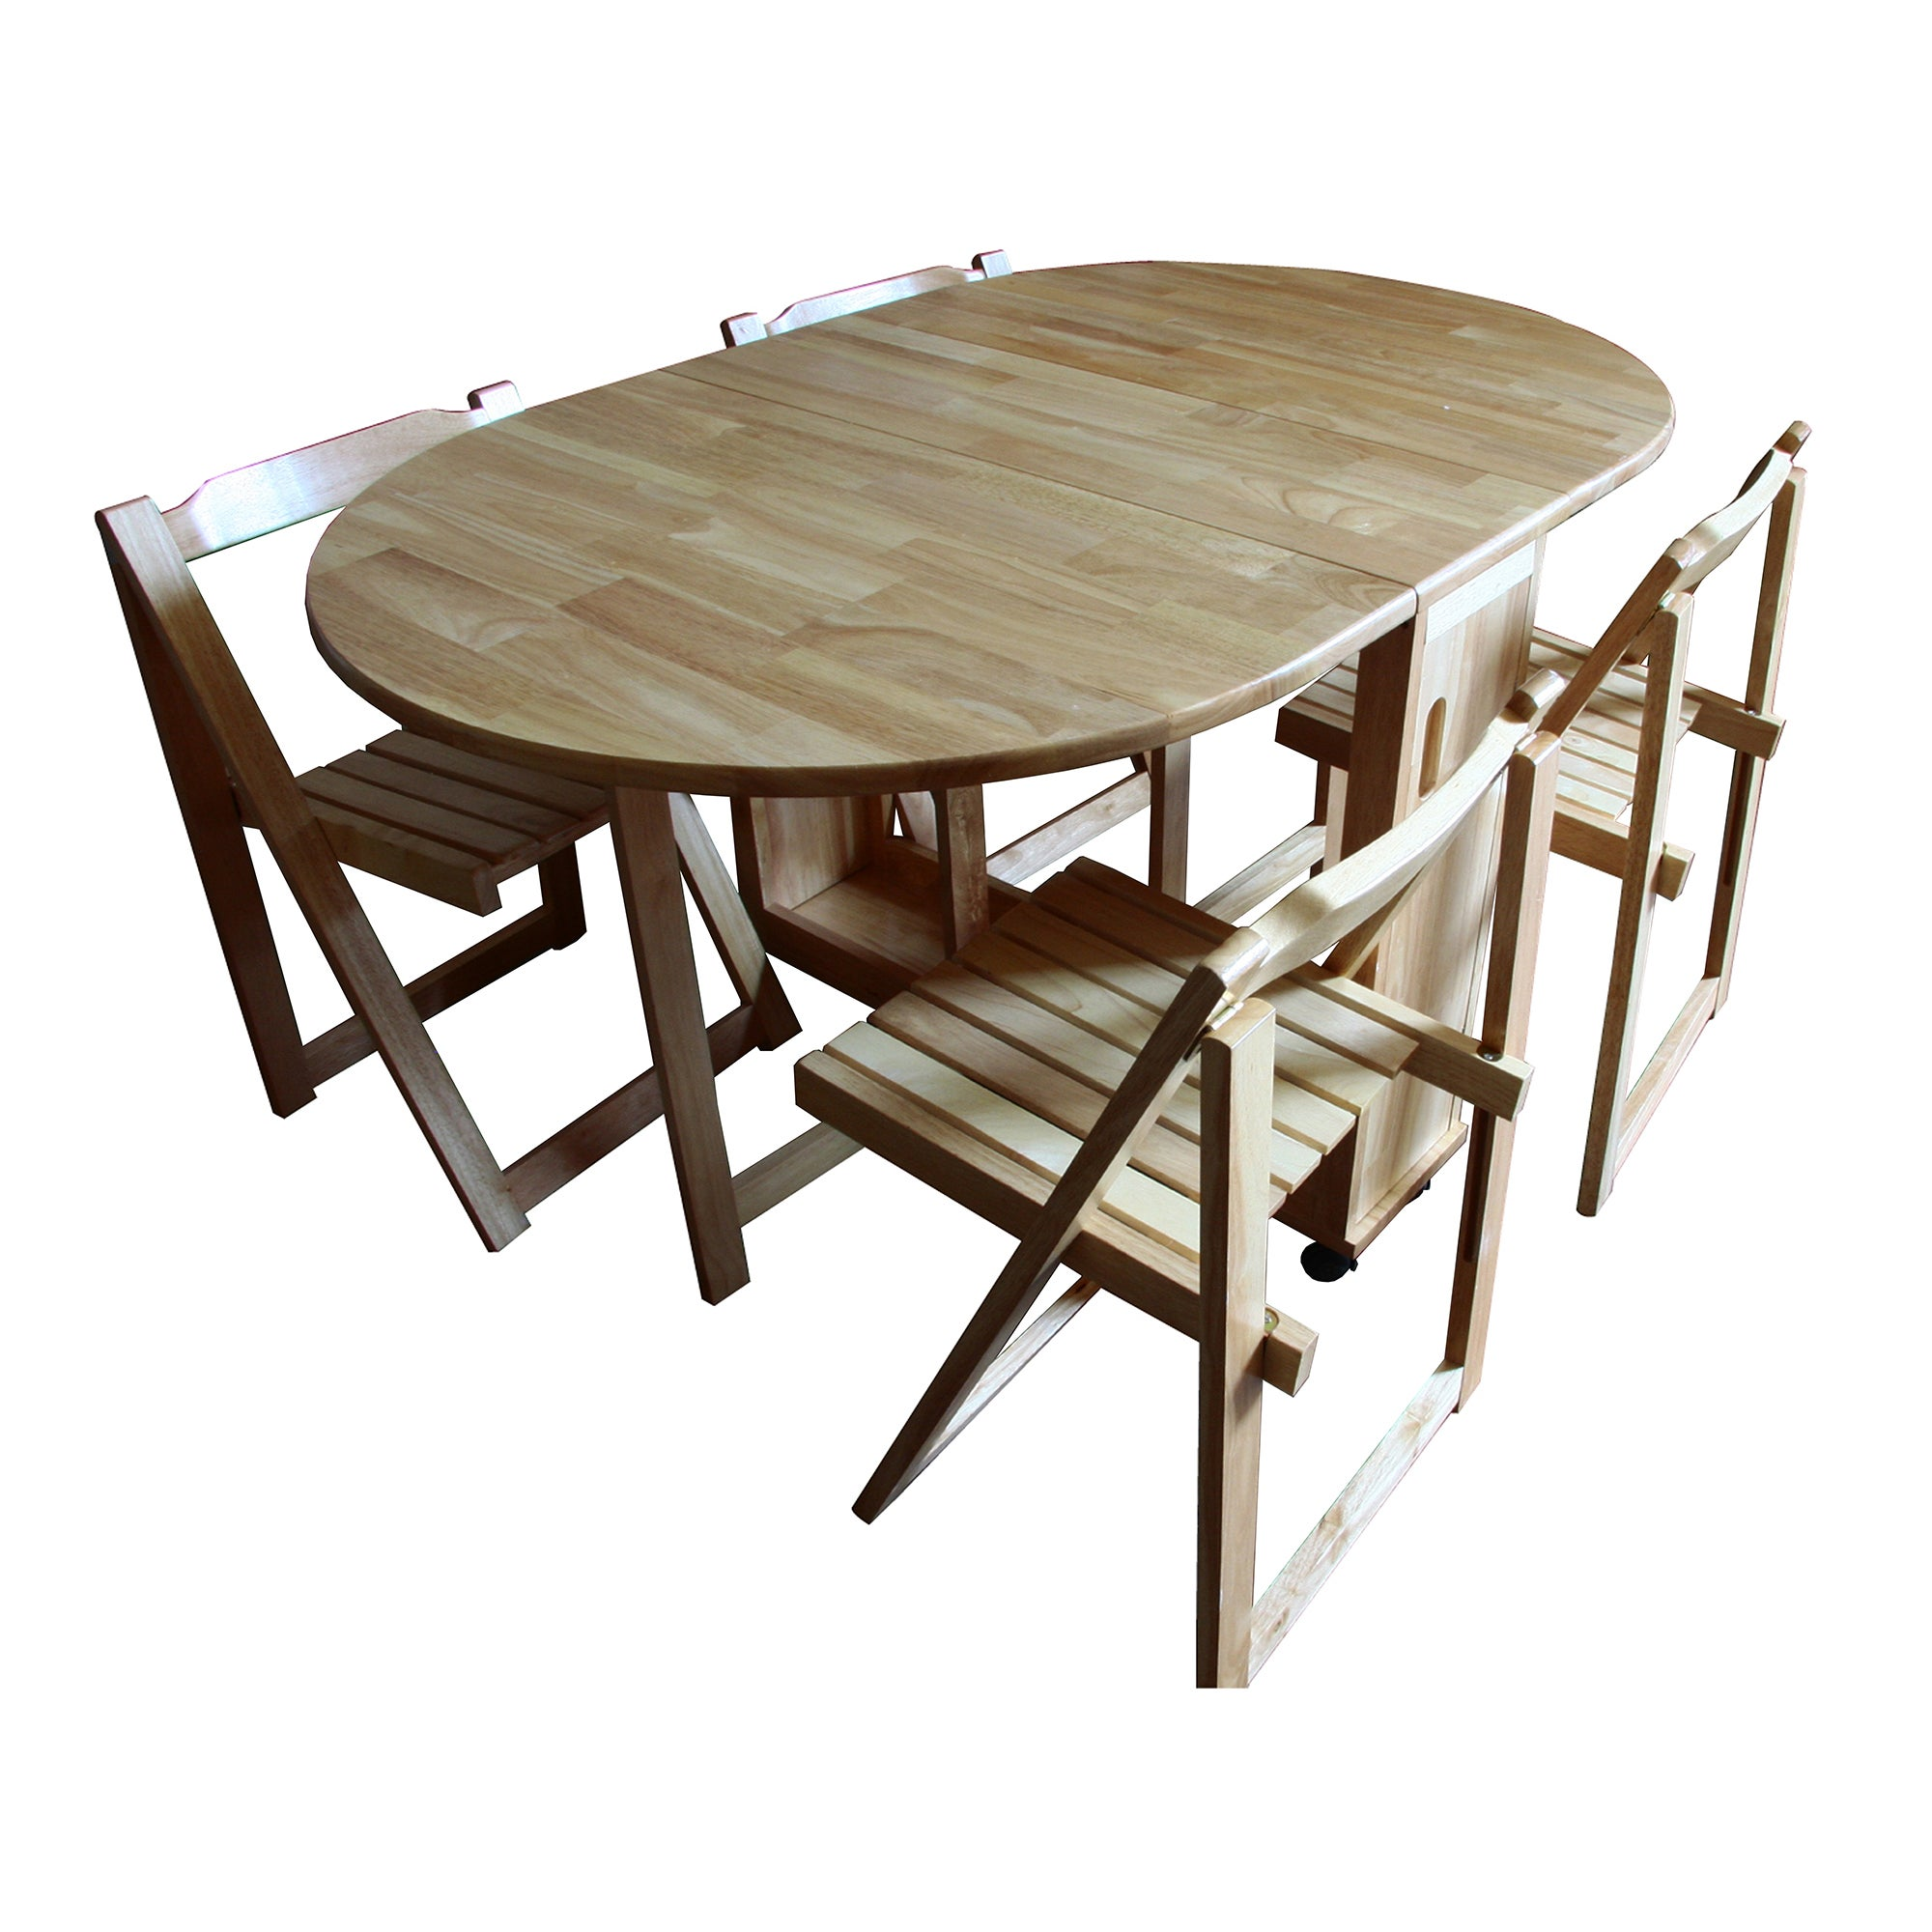 Butterfly folding table and chairs Shop for cheap Tables  : 30022944deskoverlayplayermain from badge.priceinspector.co.uk size 550 x 550 jpeg 47kB